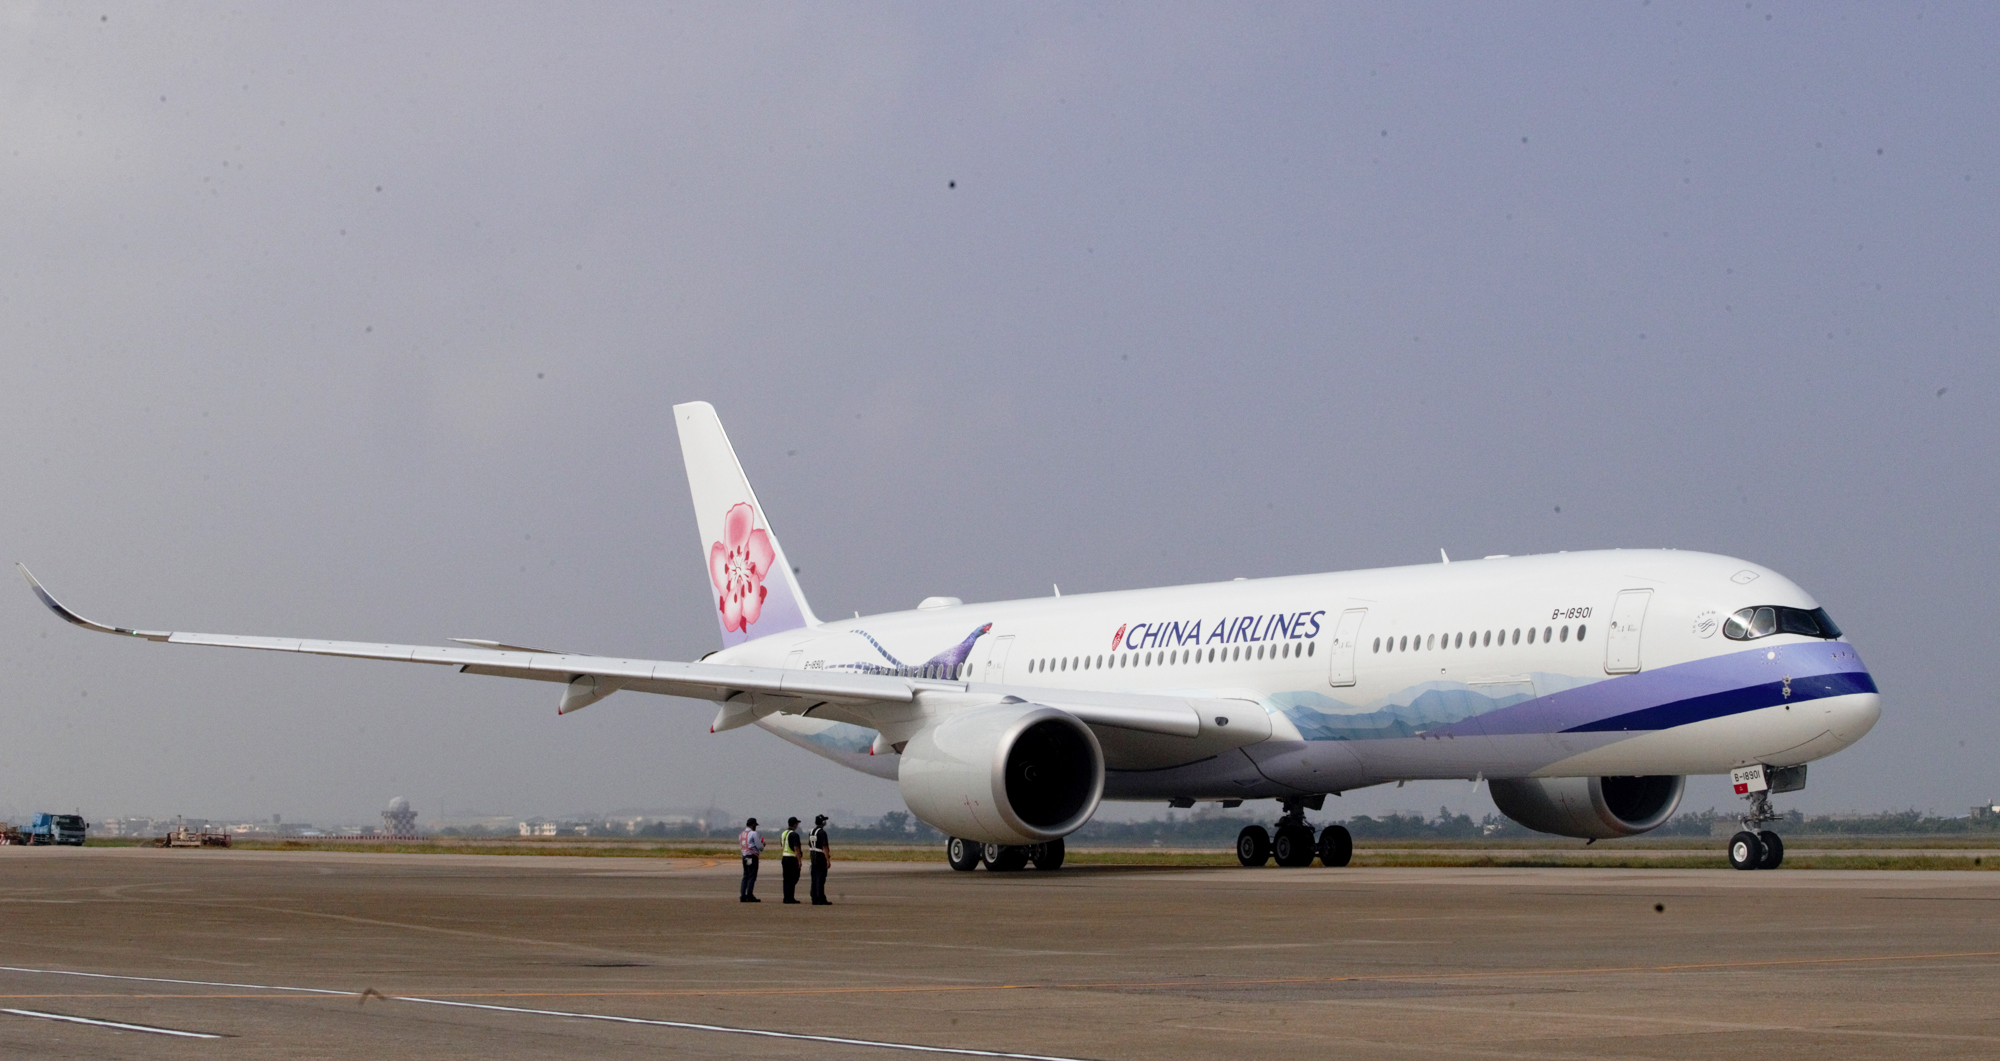 A China Airlines aircraft.